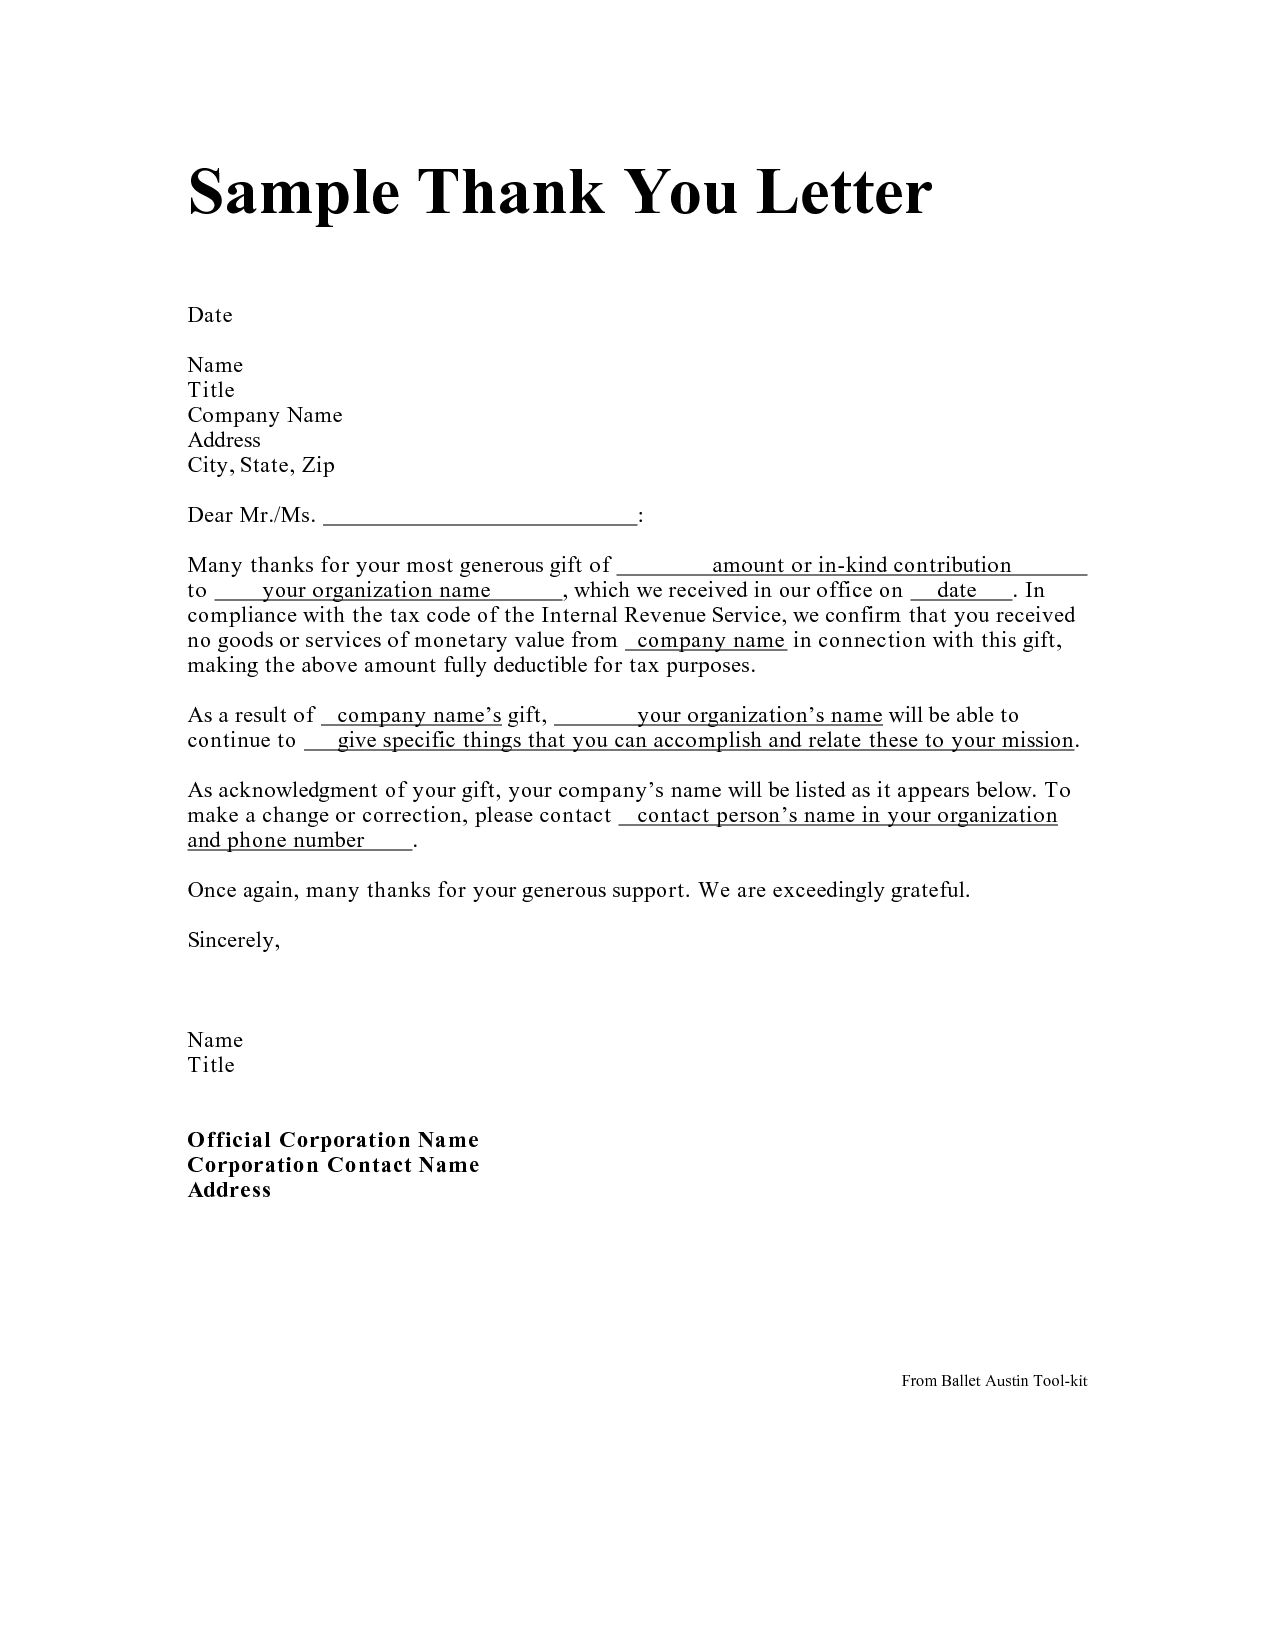 Personal Thank You Letter Personal Thank You Letter Samples Writing Thank You Not Thank You Letter Sample Thank You Letter Template Business Letter Template